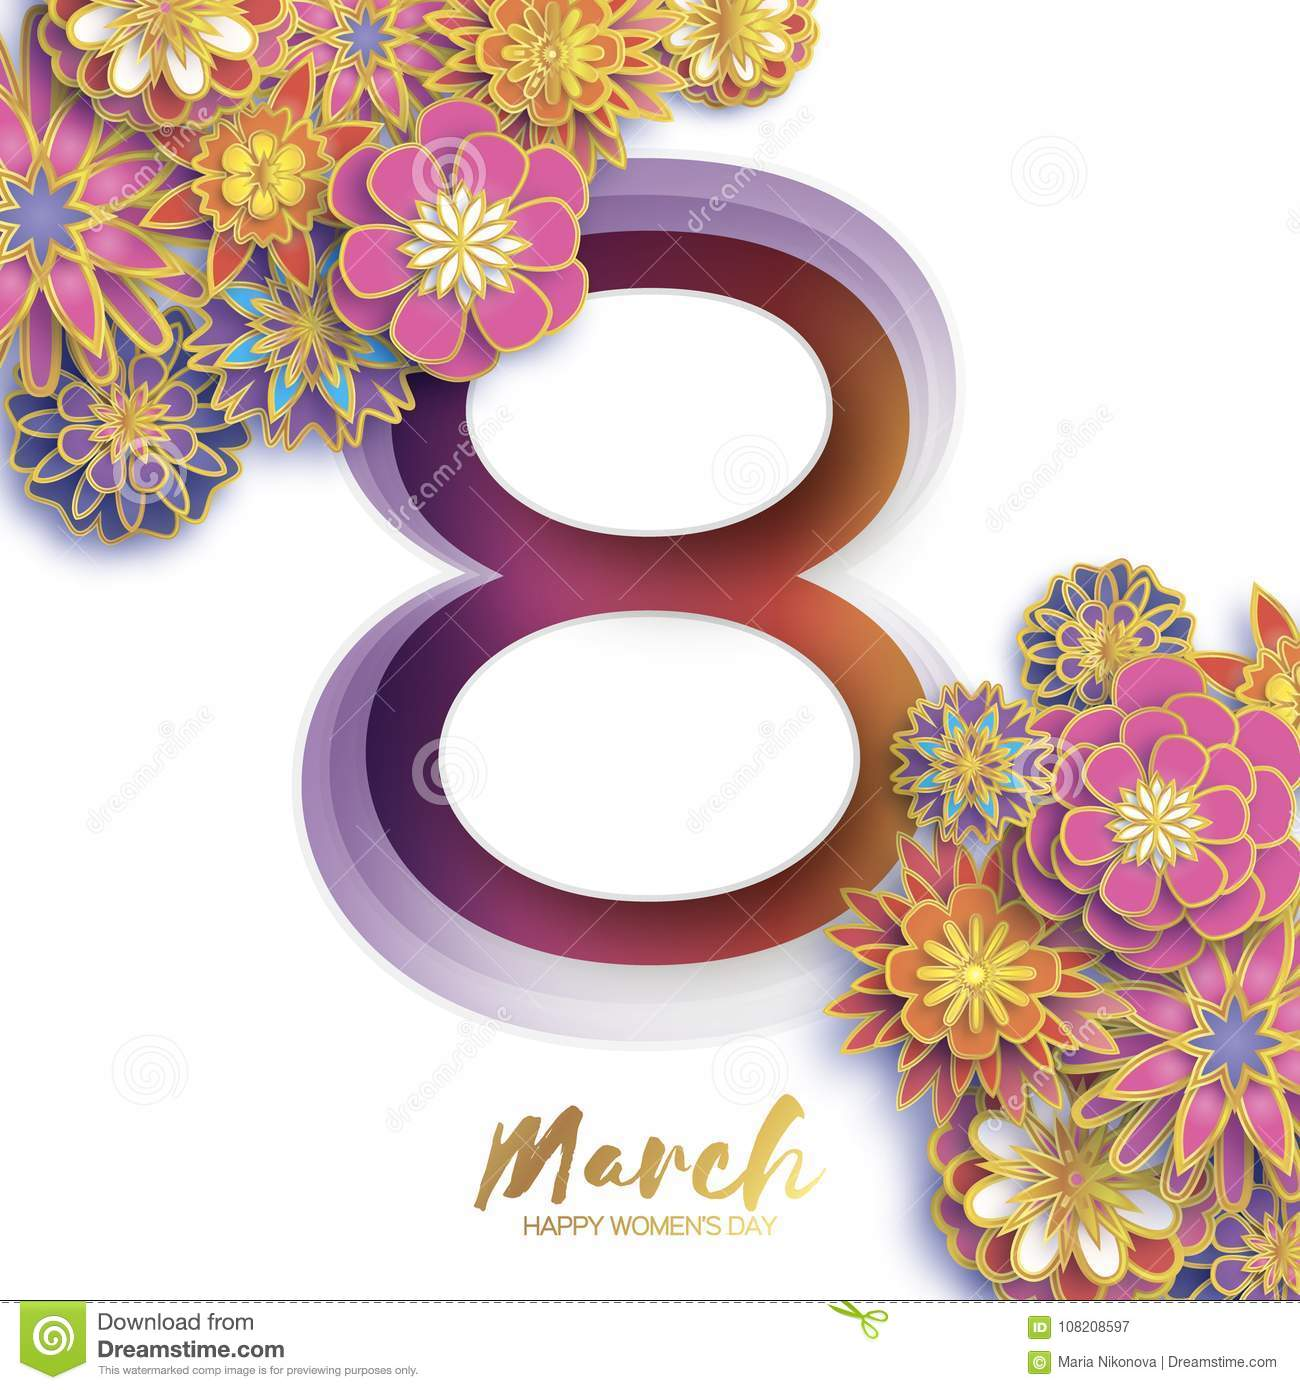 Gold Metal Happy Women s Day. 8 March. Trendy Mother s Day. Paper cut Floral Greeting card. Origami flowers. Spring